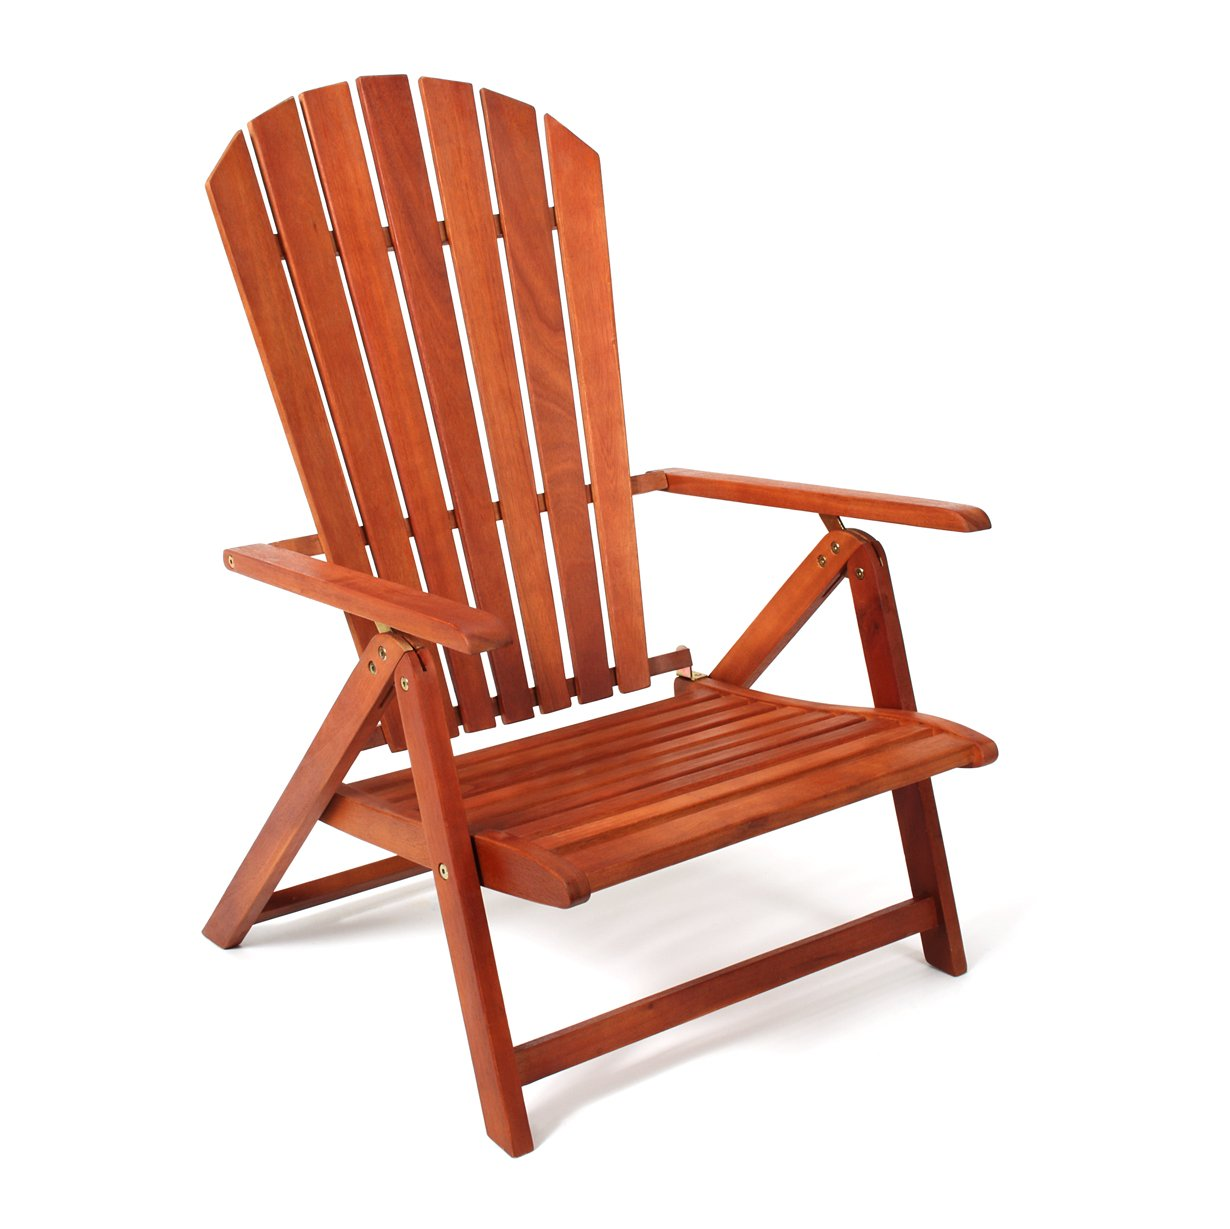 Adirondack Chair Sport Model by Sabbatical - Portable, Folding and Reclining Great for The Patio, Backyard, Beach, Camping and Outdoor Events by Sabbatical